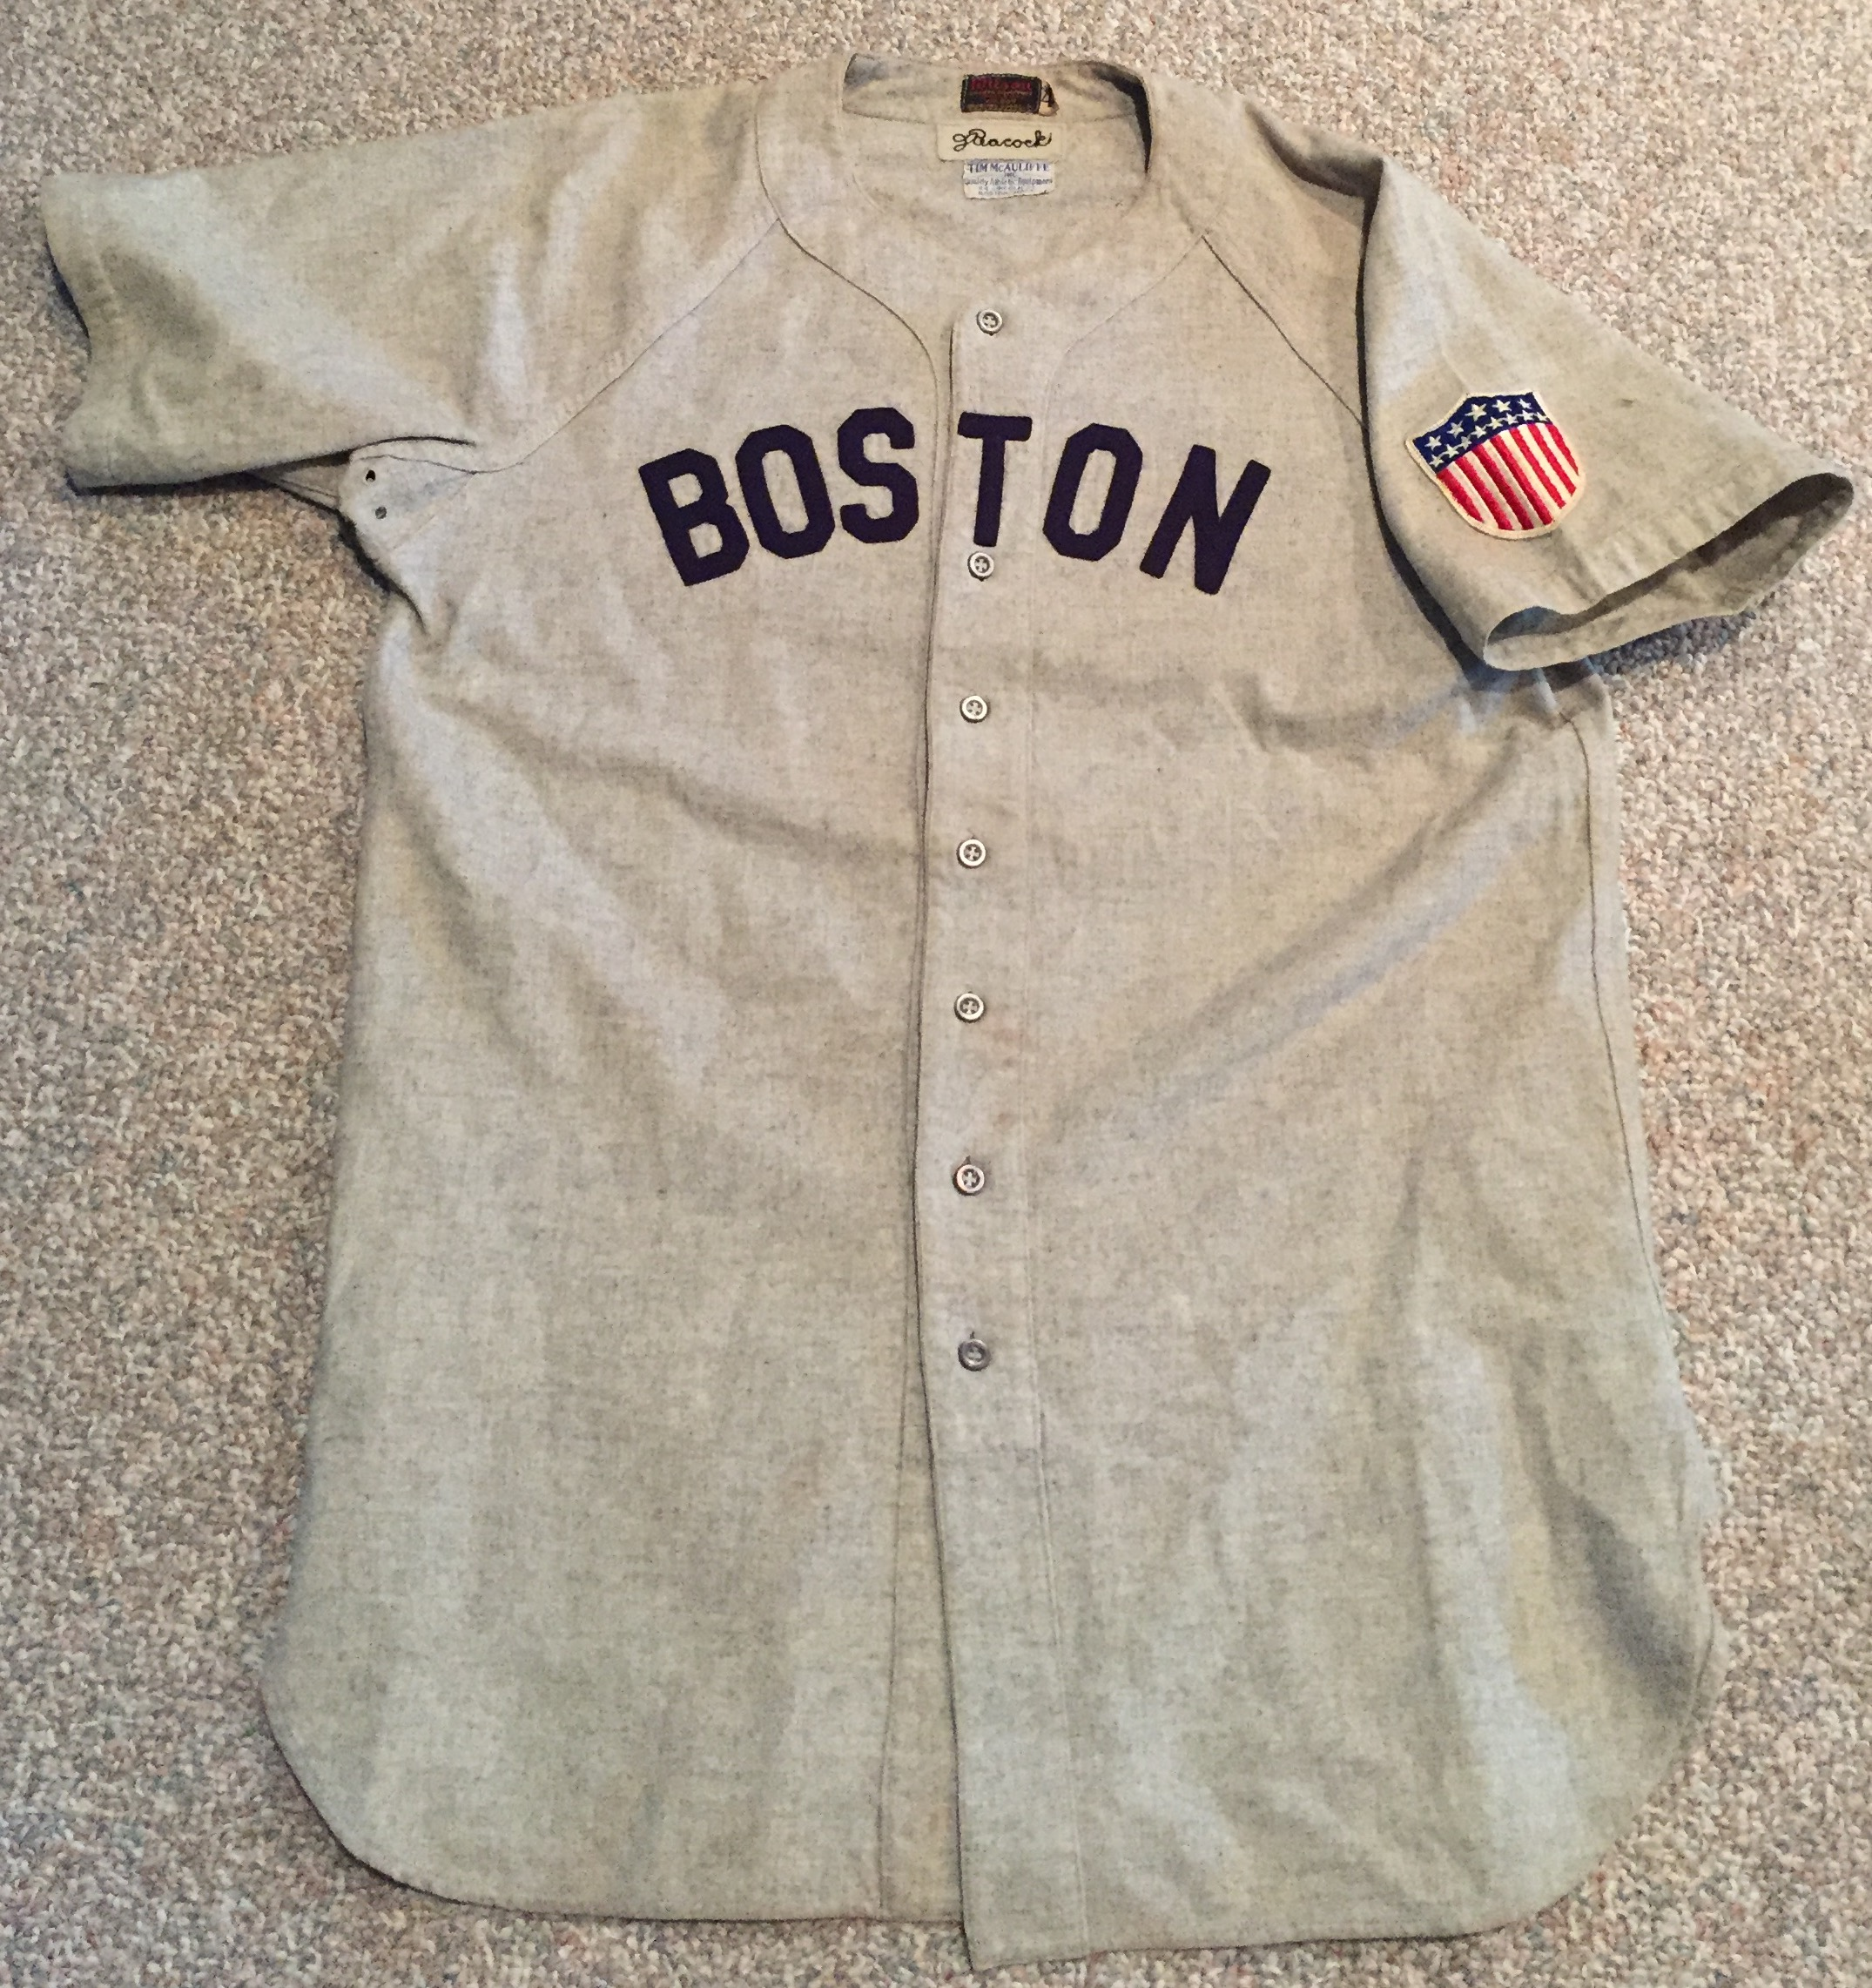 Johnny Peacock 1943 Road Red Sox Jersey